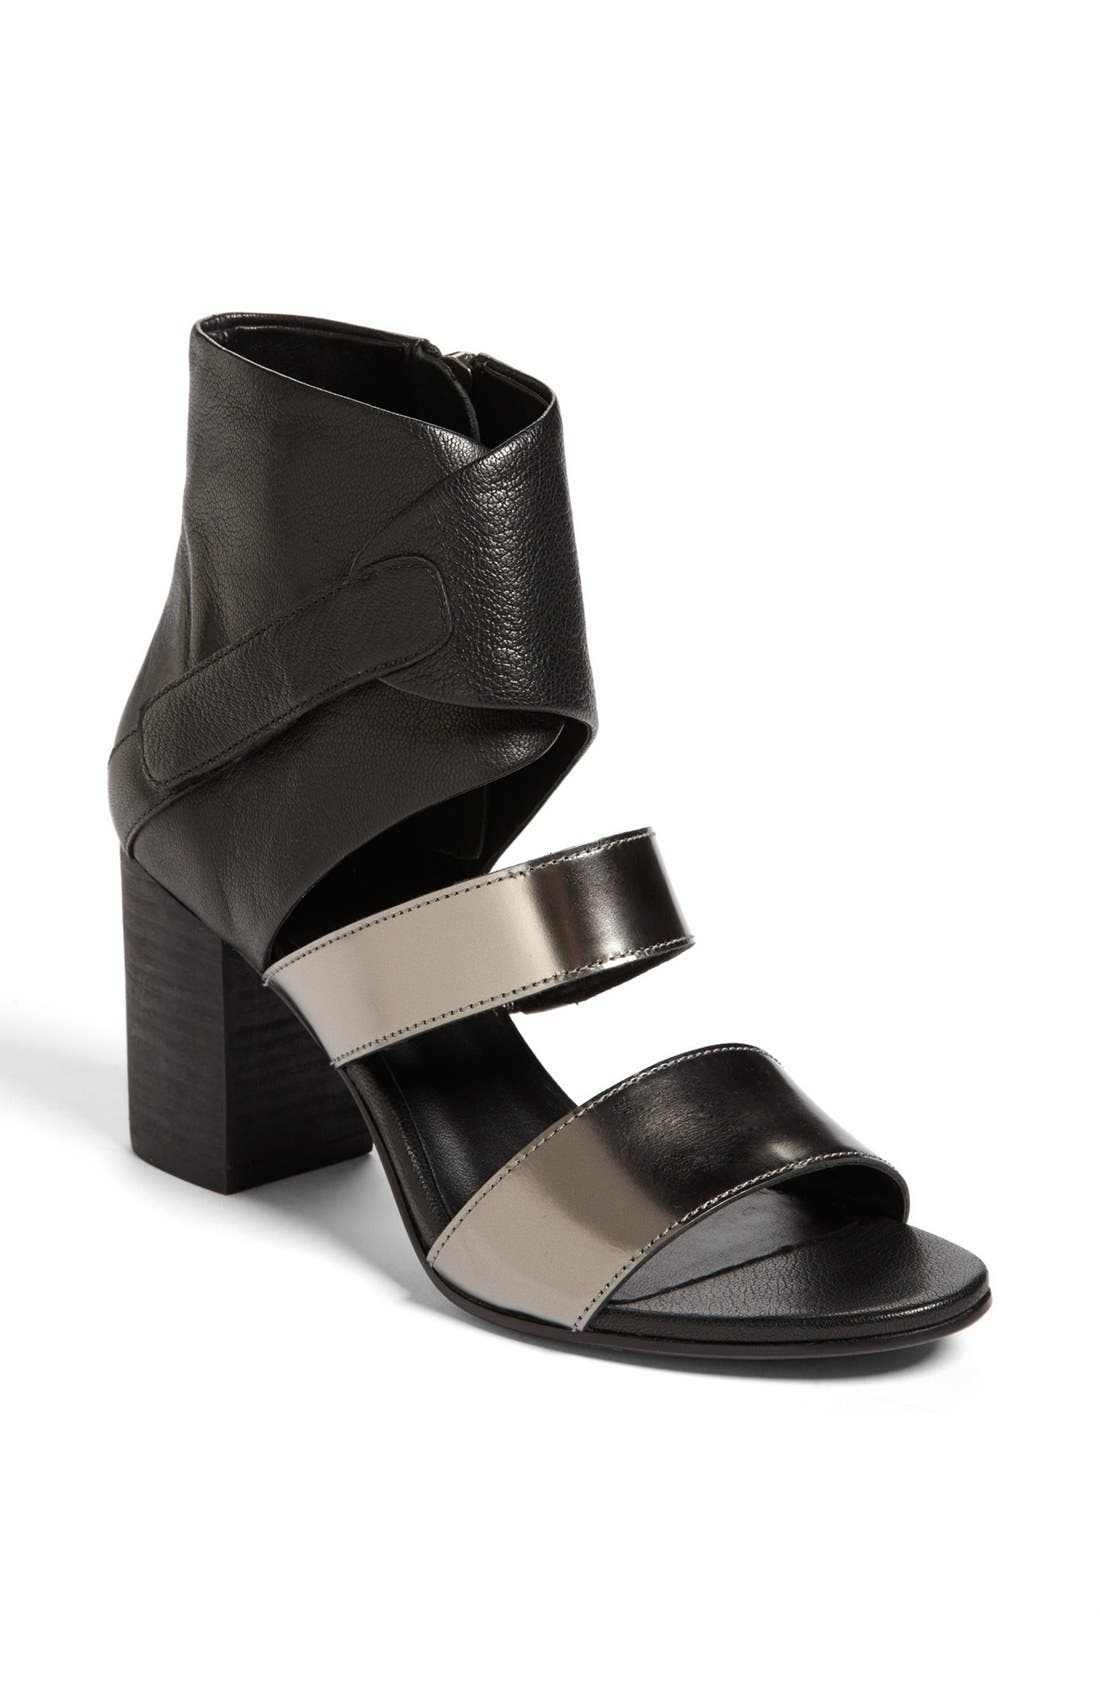 Main Image - Eileen Fisher 'Tier' Sandal